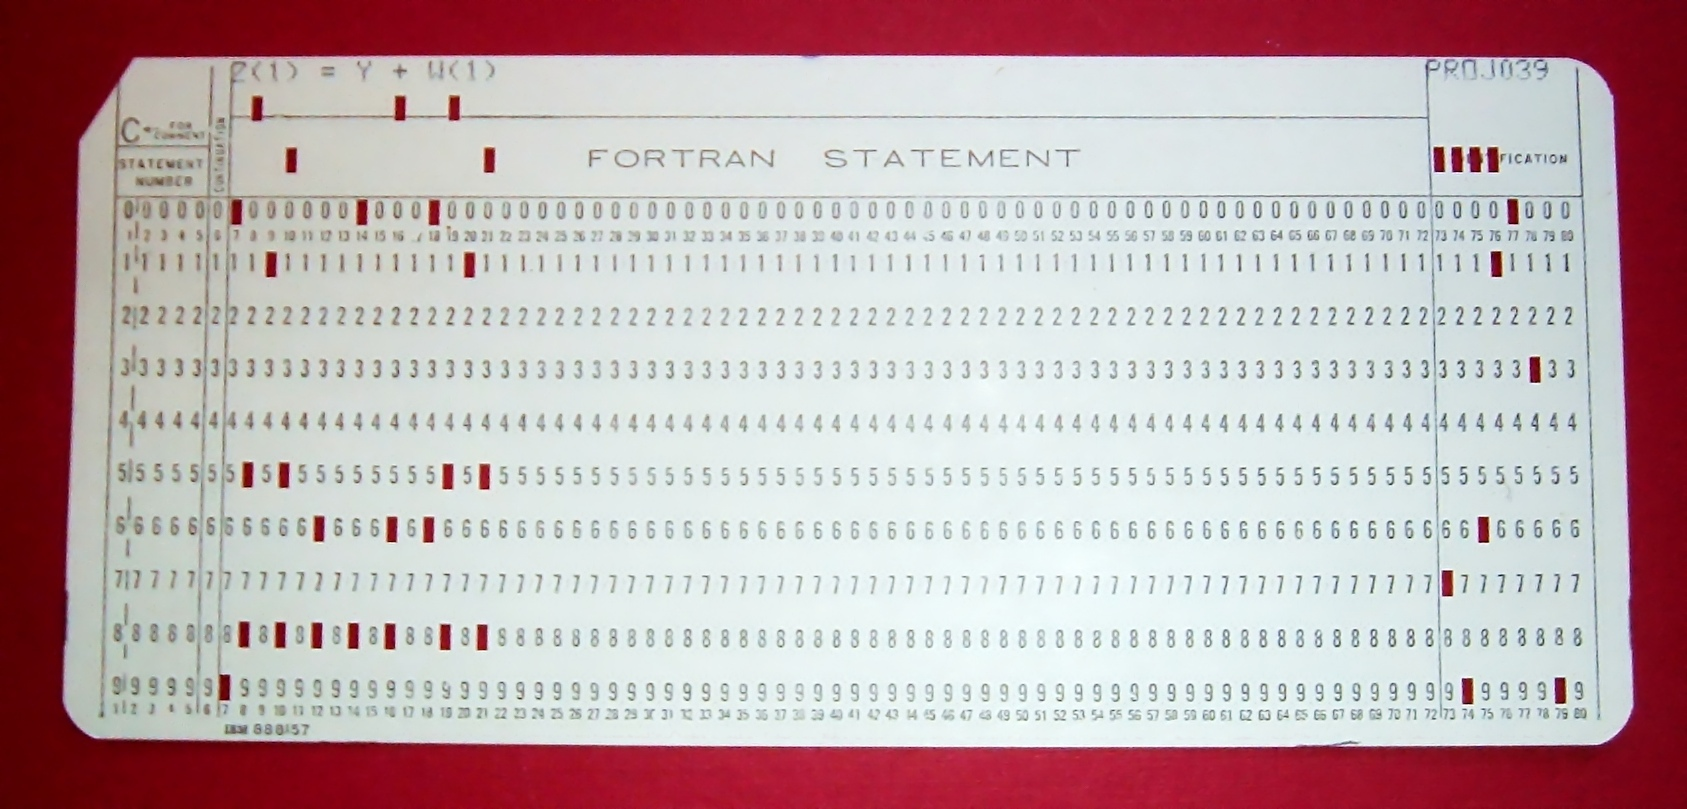 A fortran punch card